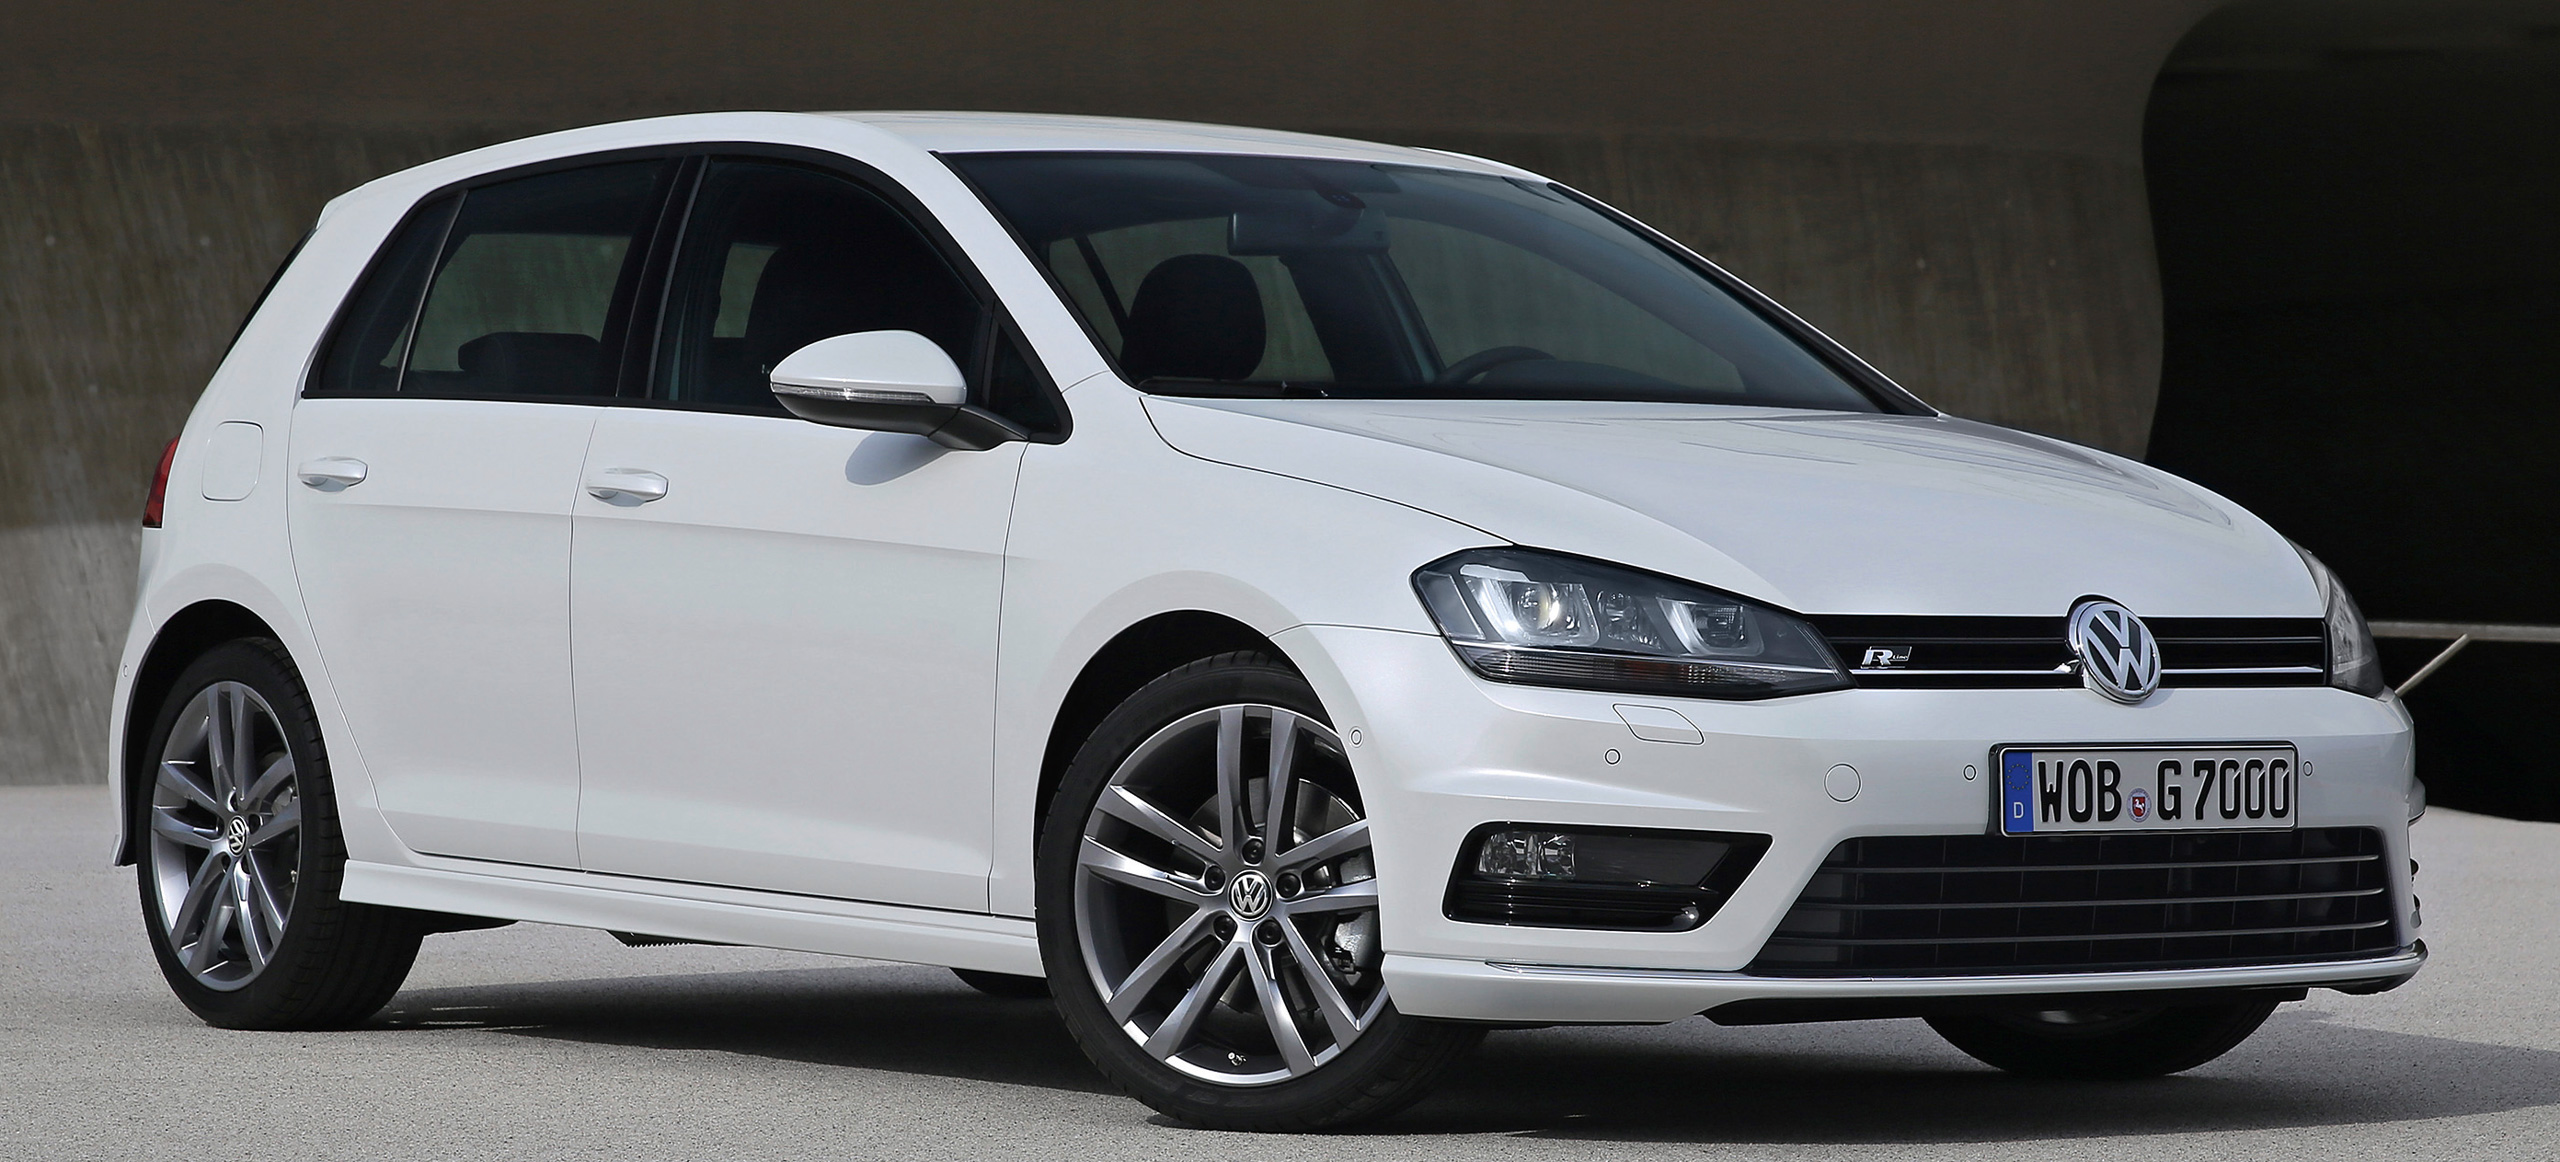 Volkswagen Introduces New Golf Mk7 R Line Packages Image